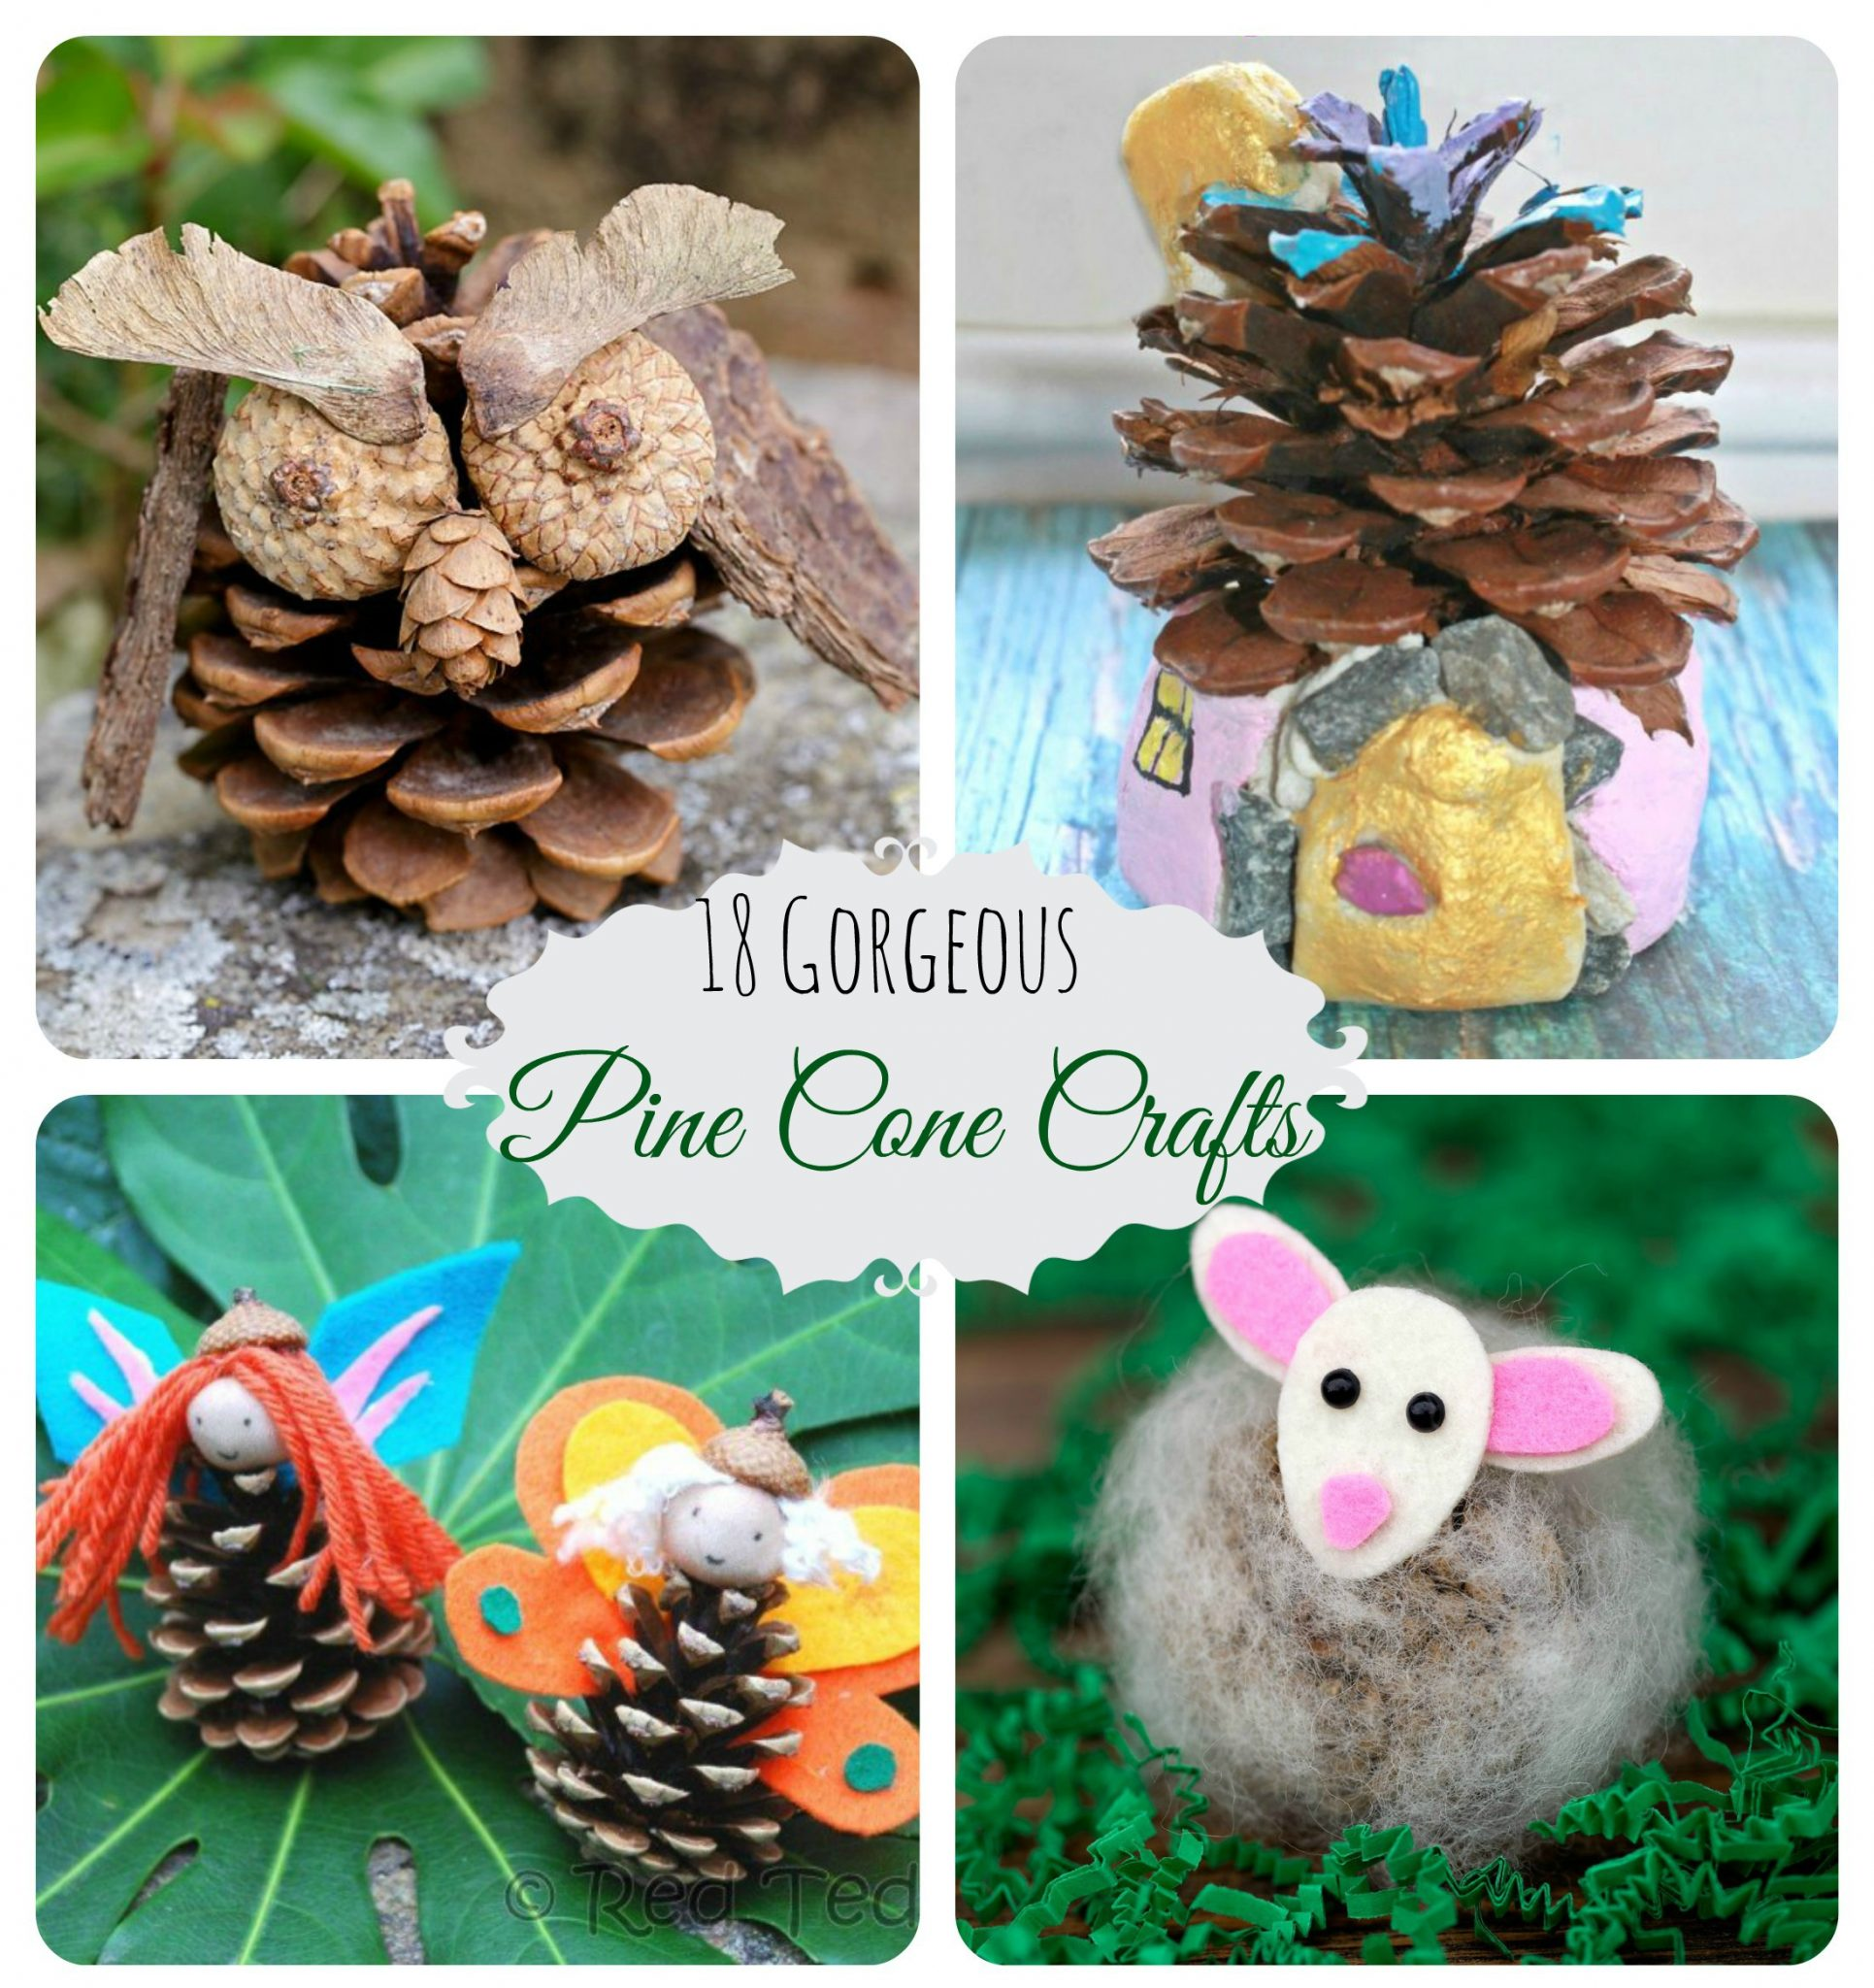 Pine Cone Crafts Part - 25: 18 Gorgeous Pine Cone Crafts. Nature Arts And Crafts For Kids.